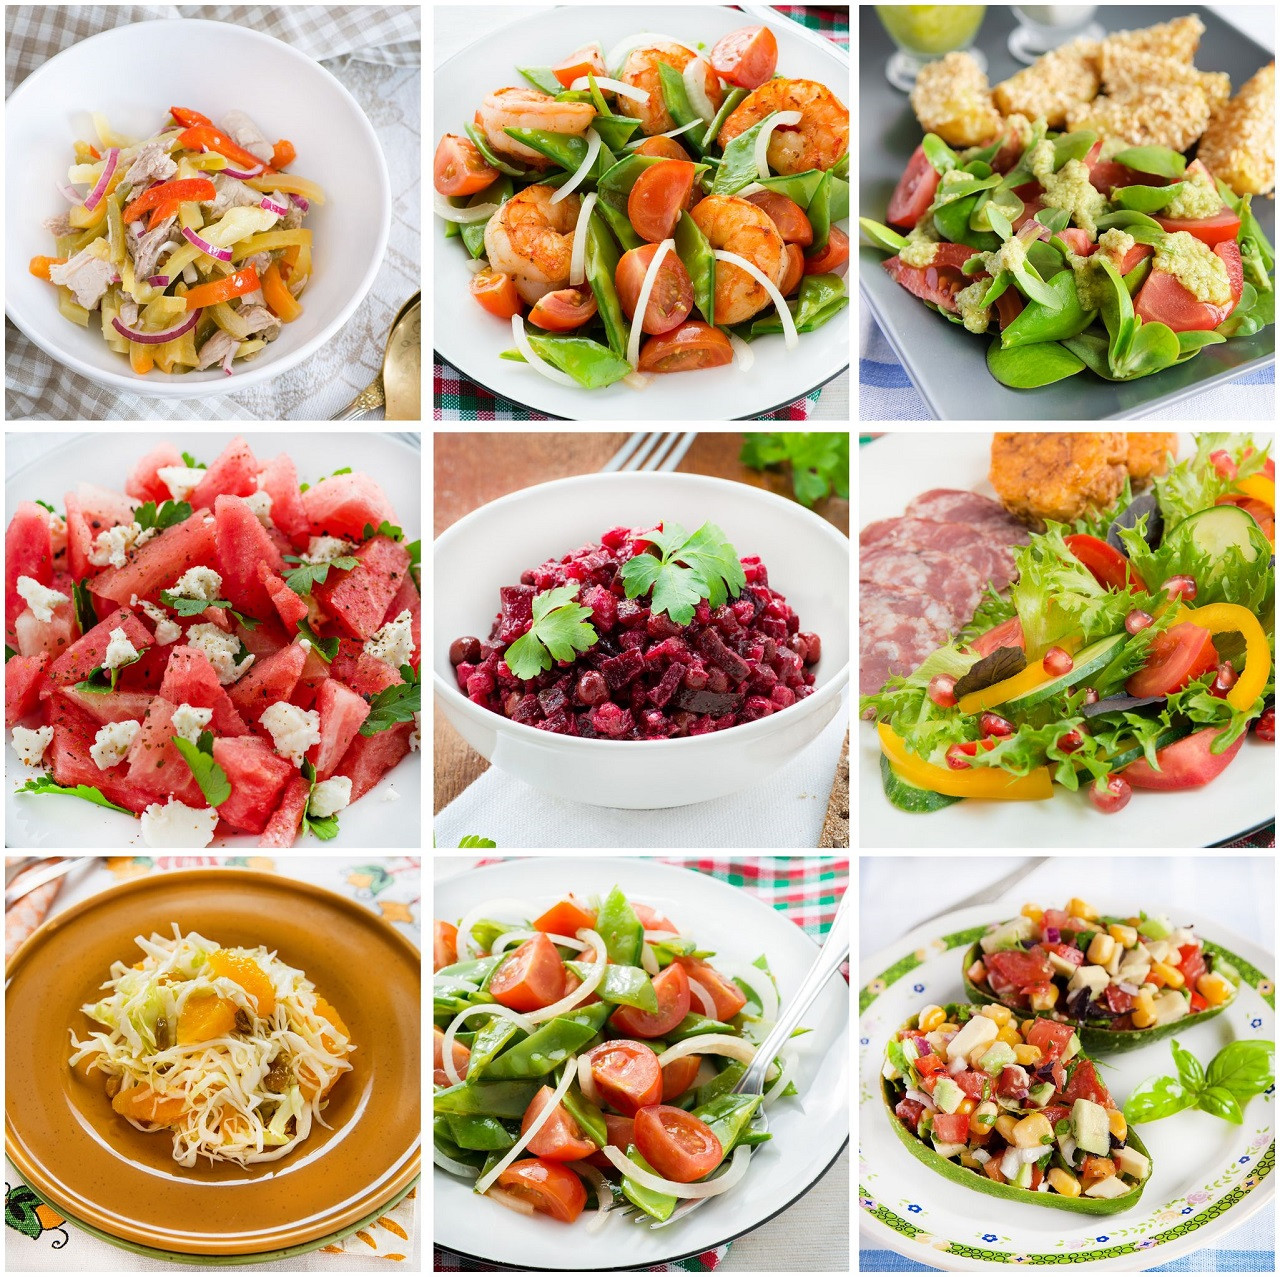 Healthy Salads To Eat  WatchFit 5 Crunchy Healthy Salads For Dinner